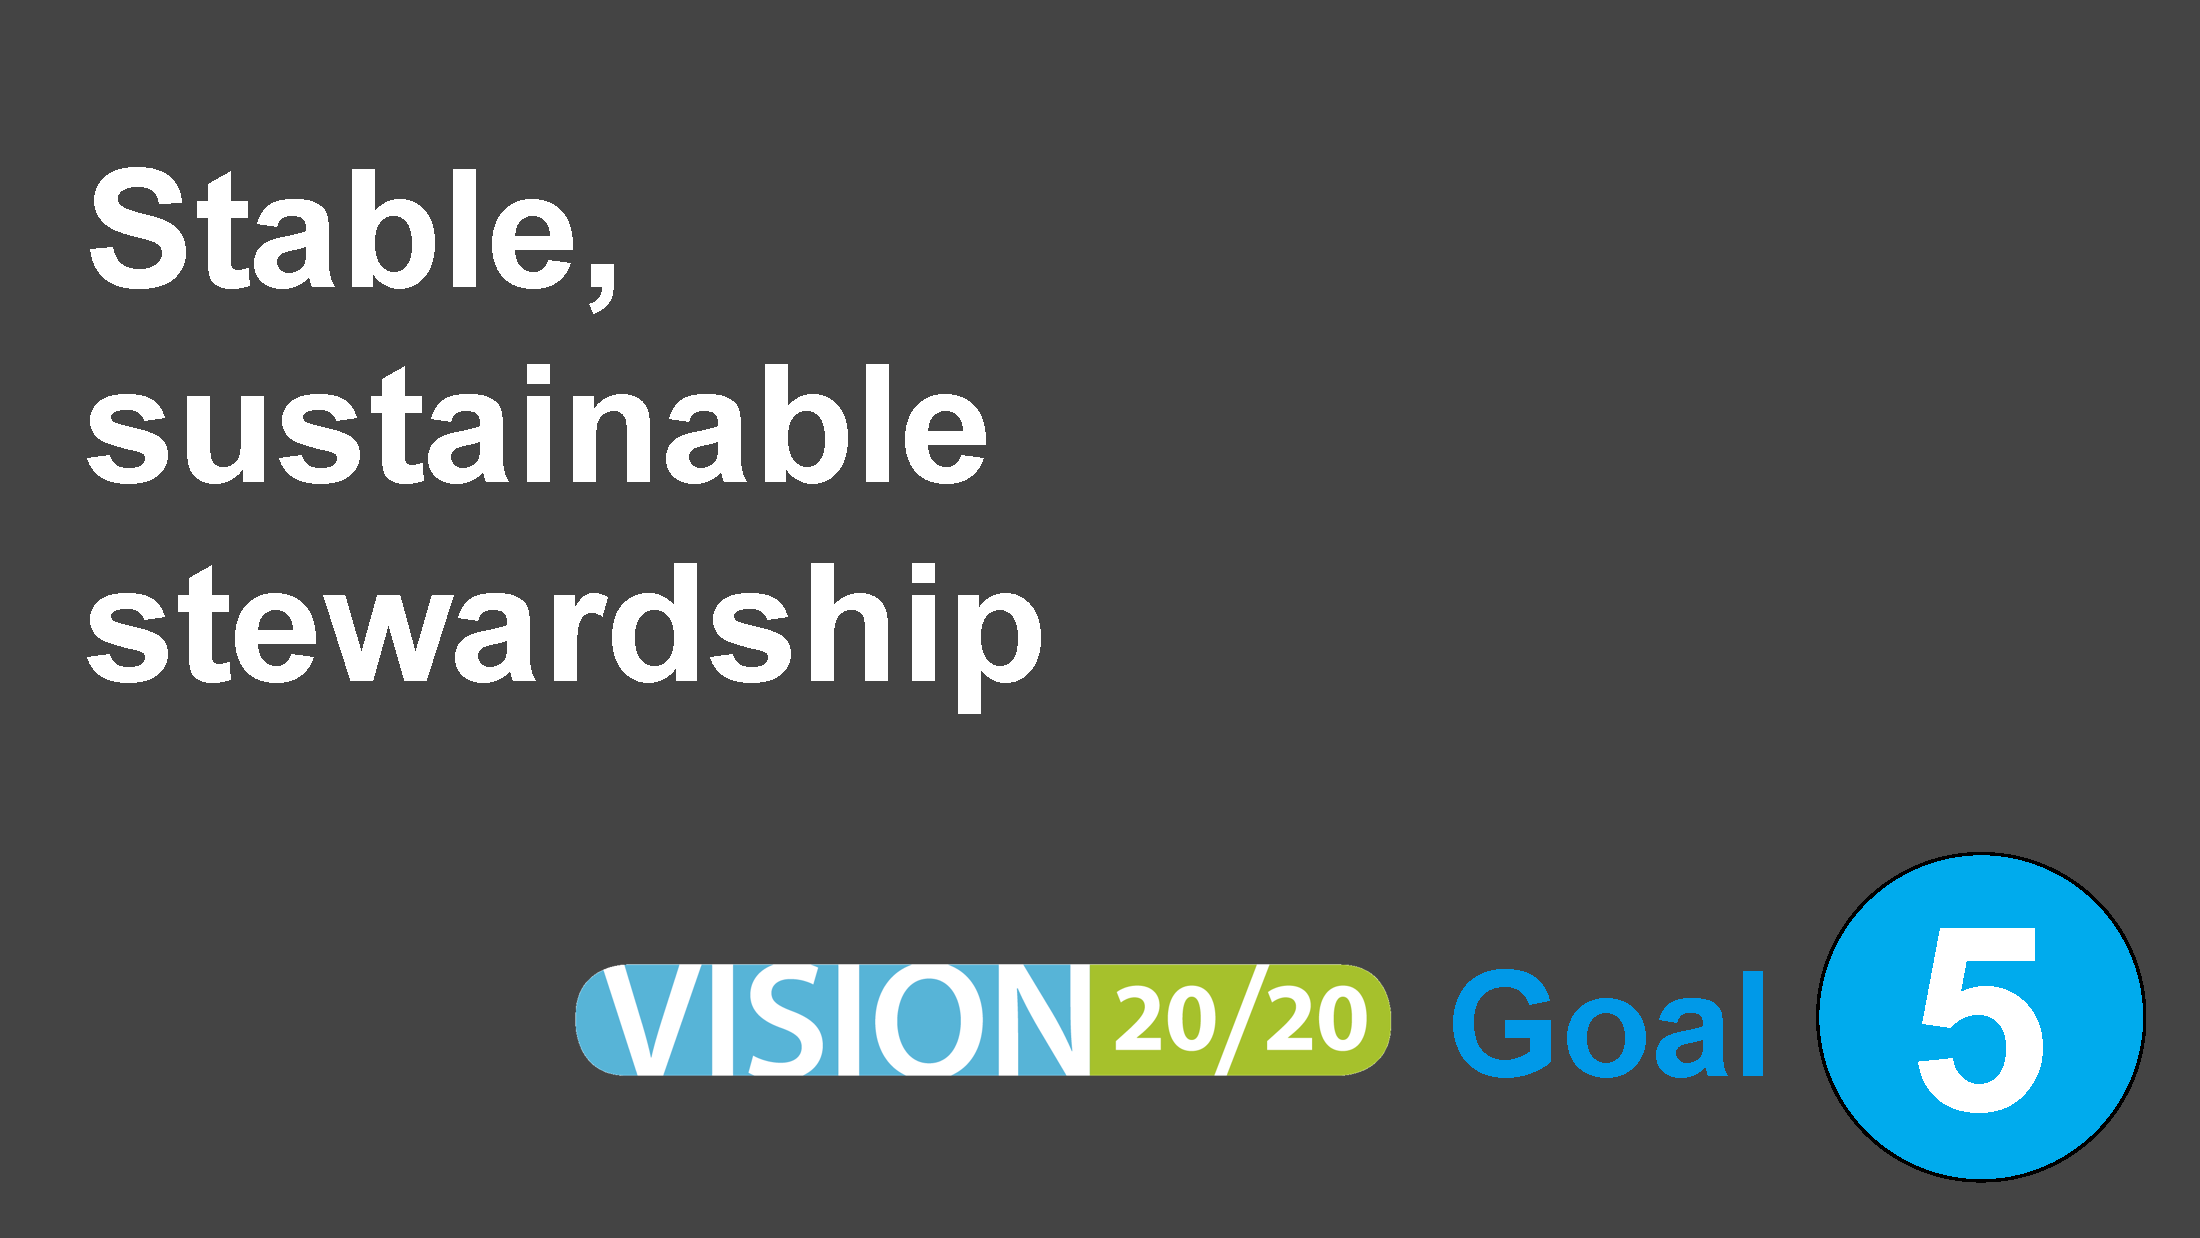 4J Vision 20/20 Strategic Plan Goal 5: Stable, sustainable stewardship